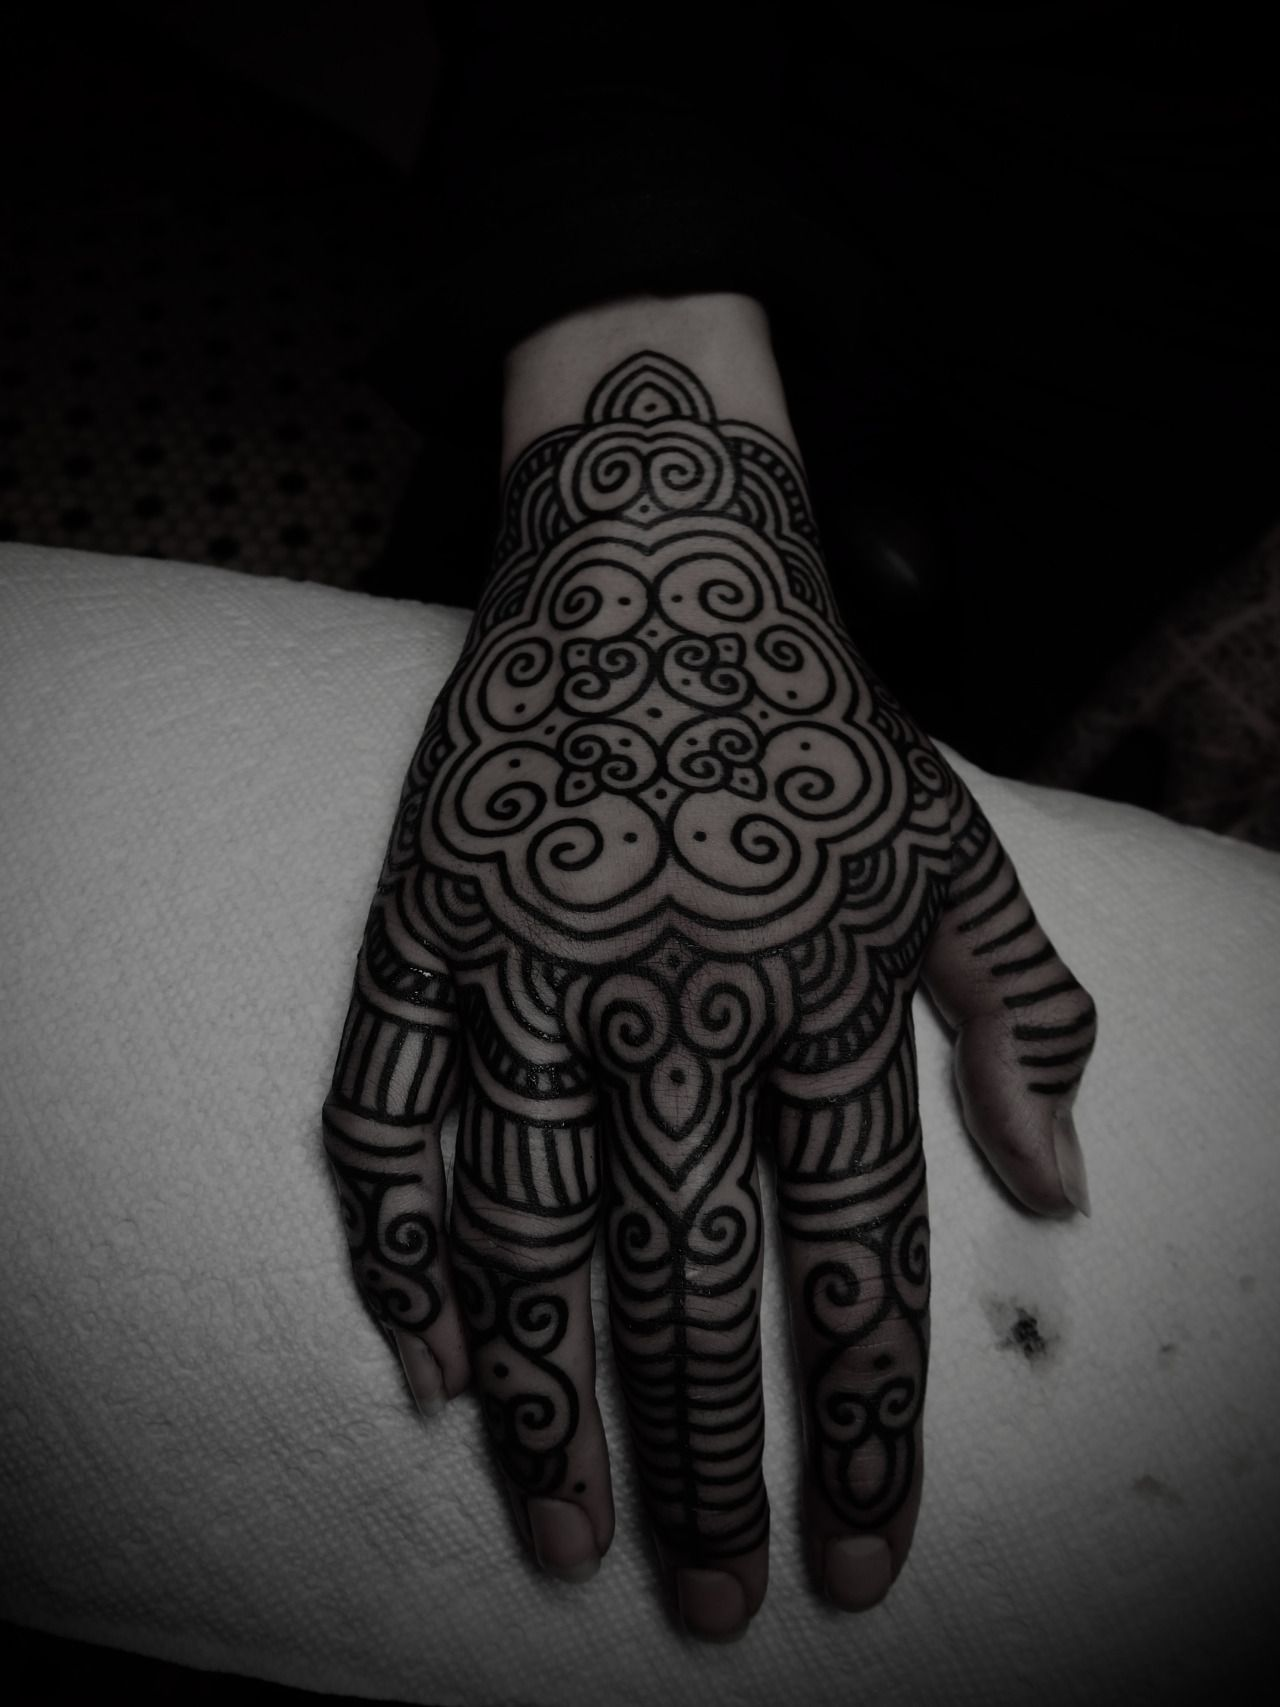 If I were to have a hand tattoo, it would be something like this.  A fan of Guy le Tatooer's work, as always! <3